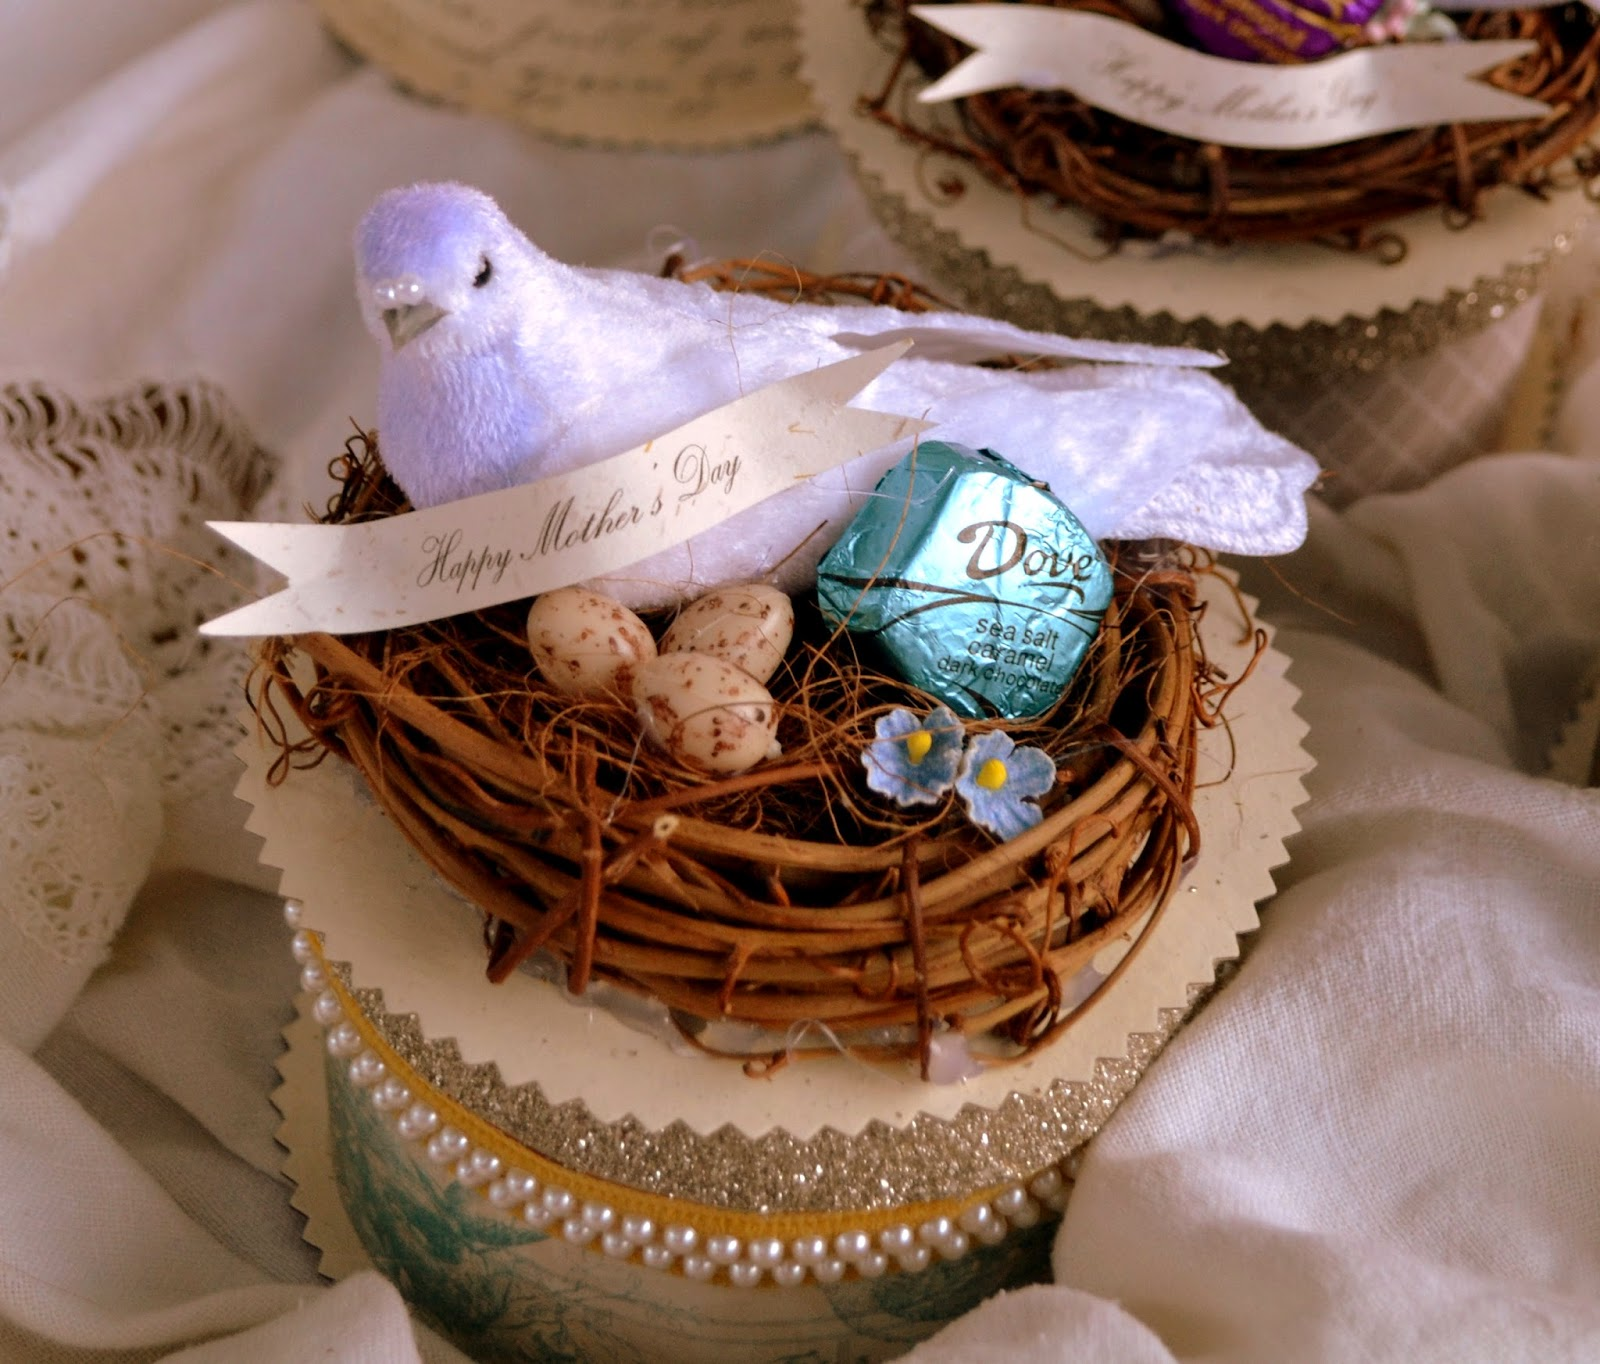 Jennuine by rook no 17 diy handmade mothers day gift dove the combination of the handmade victorian style keepsake box and dove dark chocolate makes for a one of a kind gift that is unique and as special as your negle Gallery